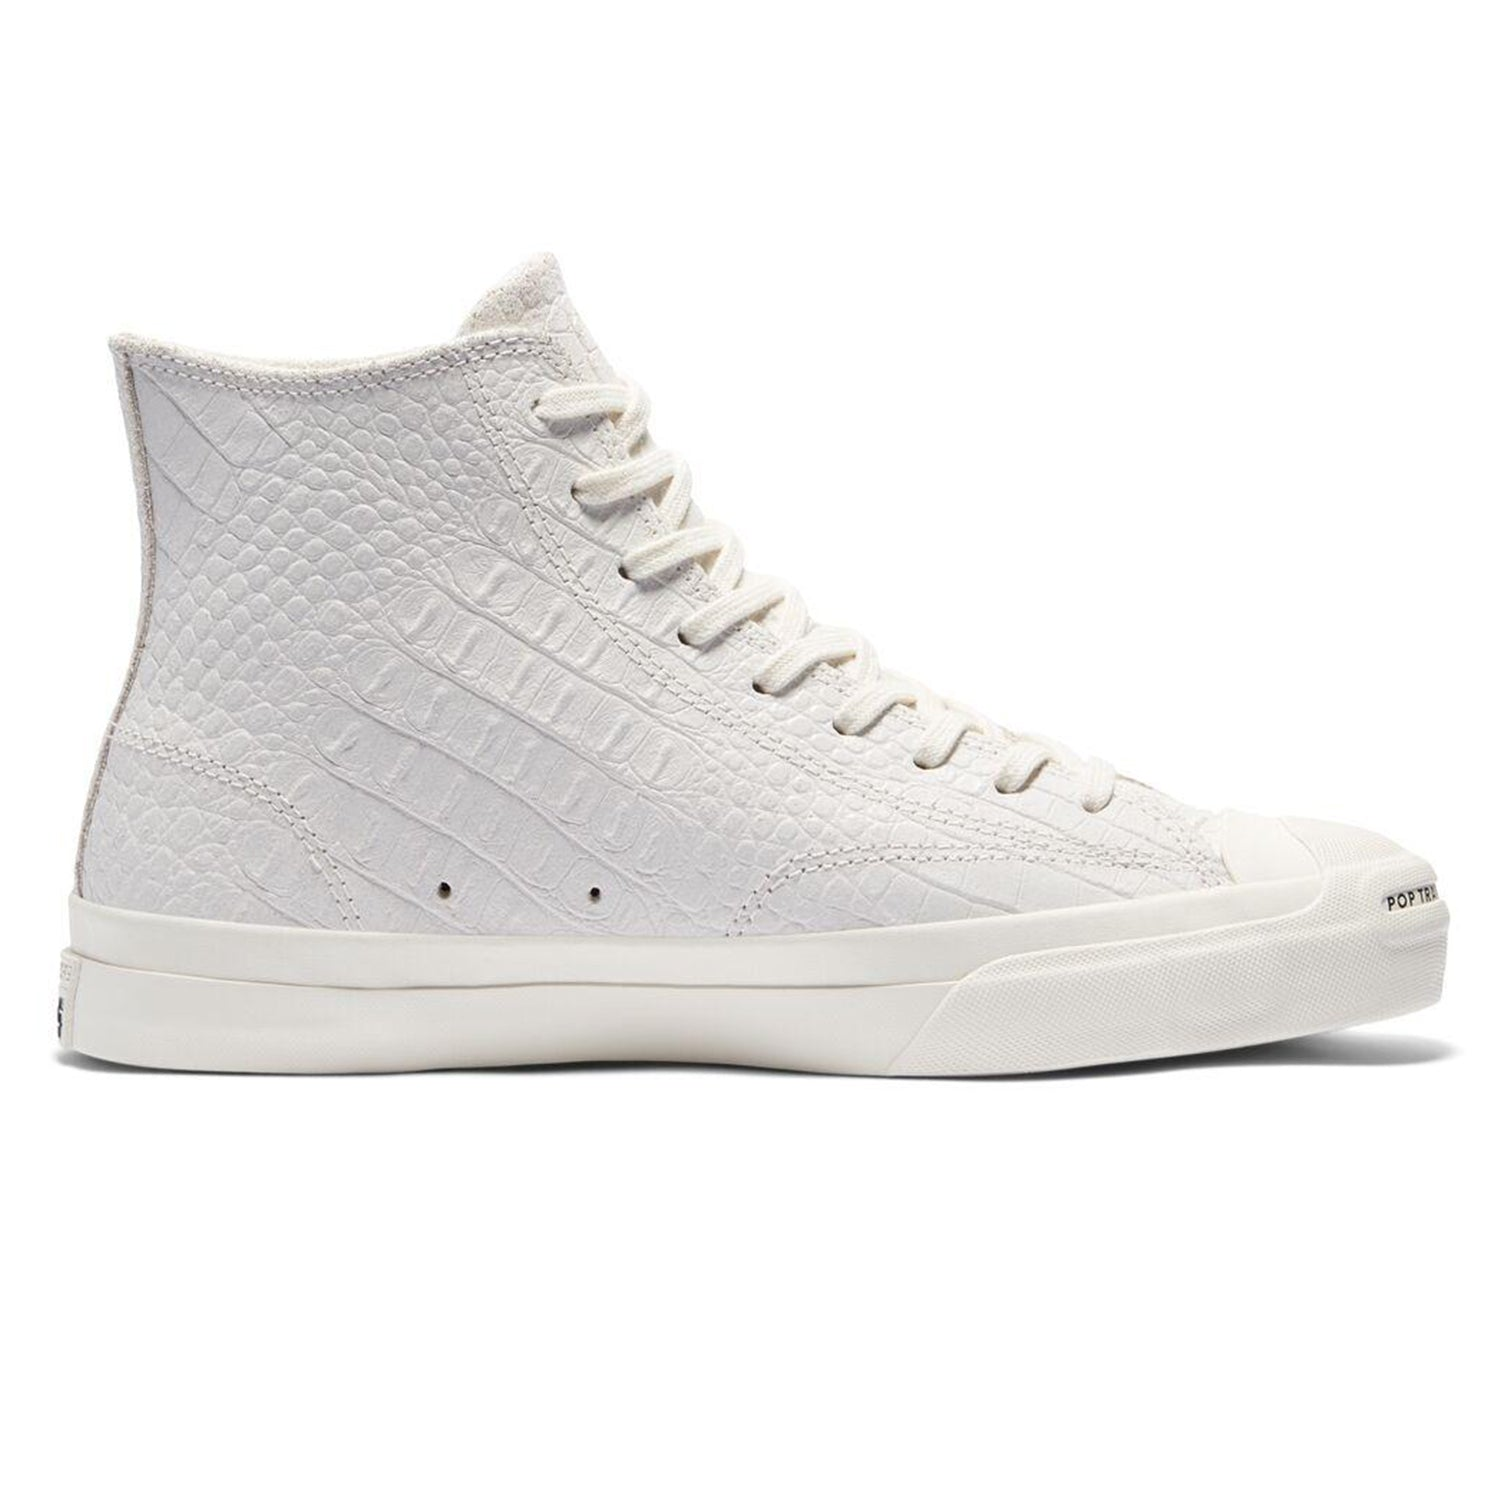 Converse CONS x Pop Trading Jack Purcell Pro Hi Egret/Black